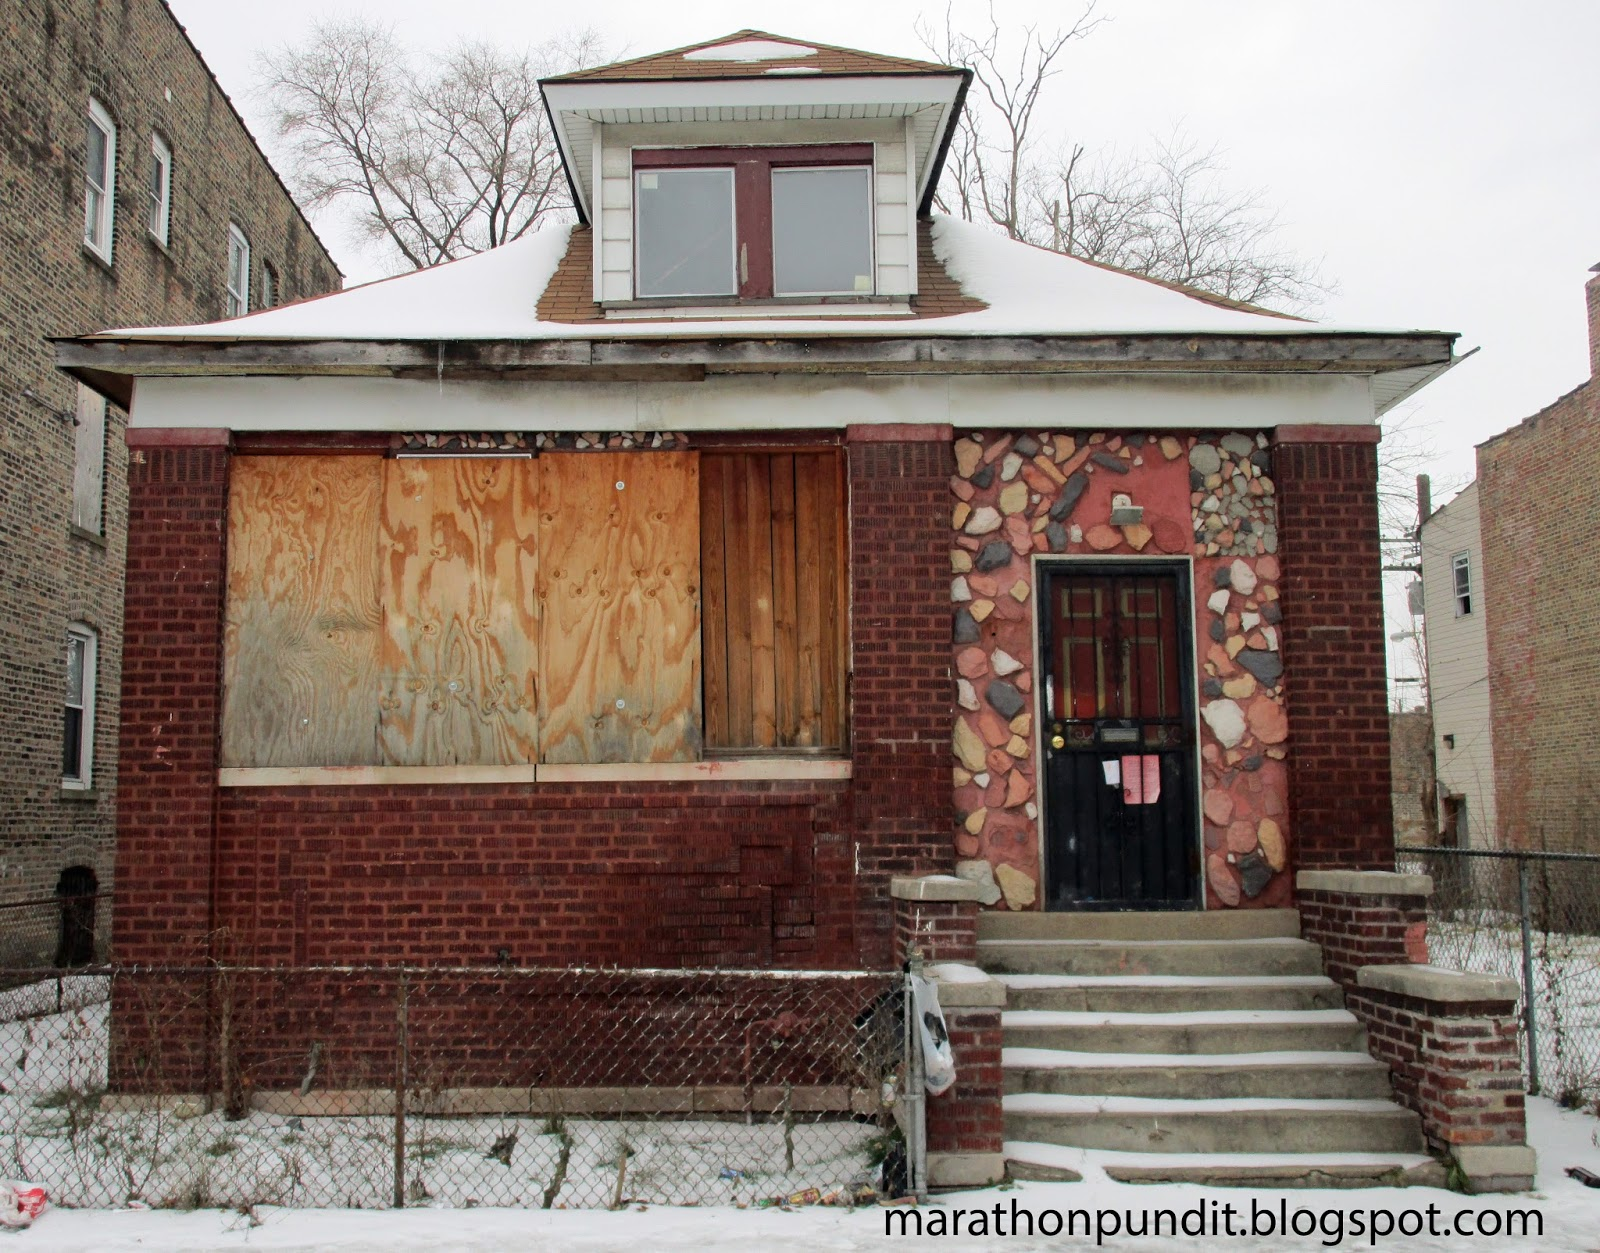 Marathon pundit photos the abandoned homes of chicago 39 s for Bungalow house chicago